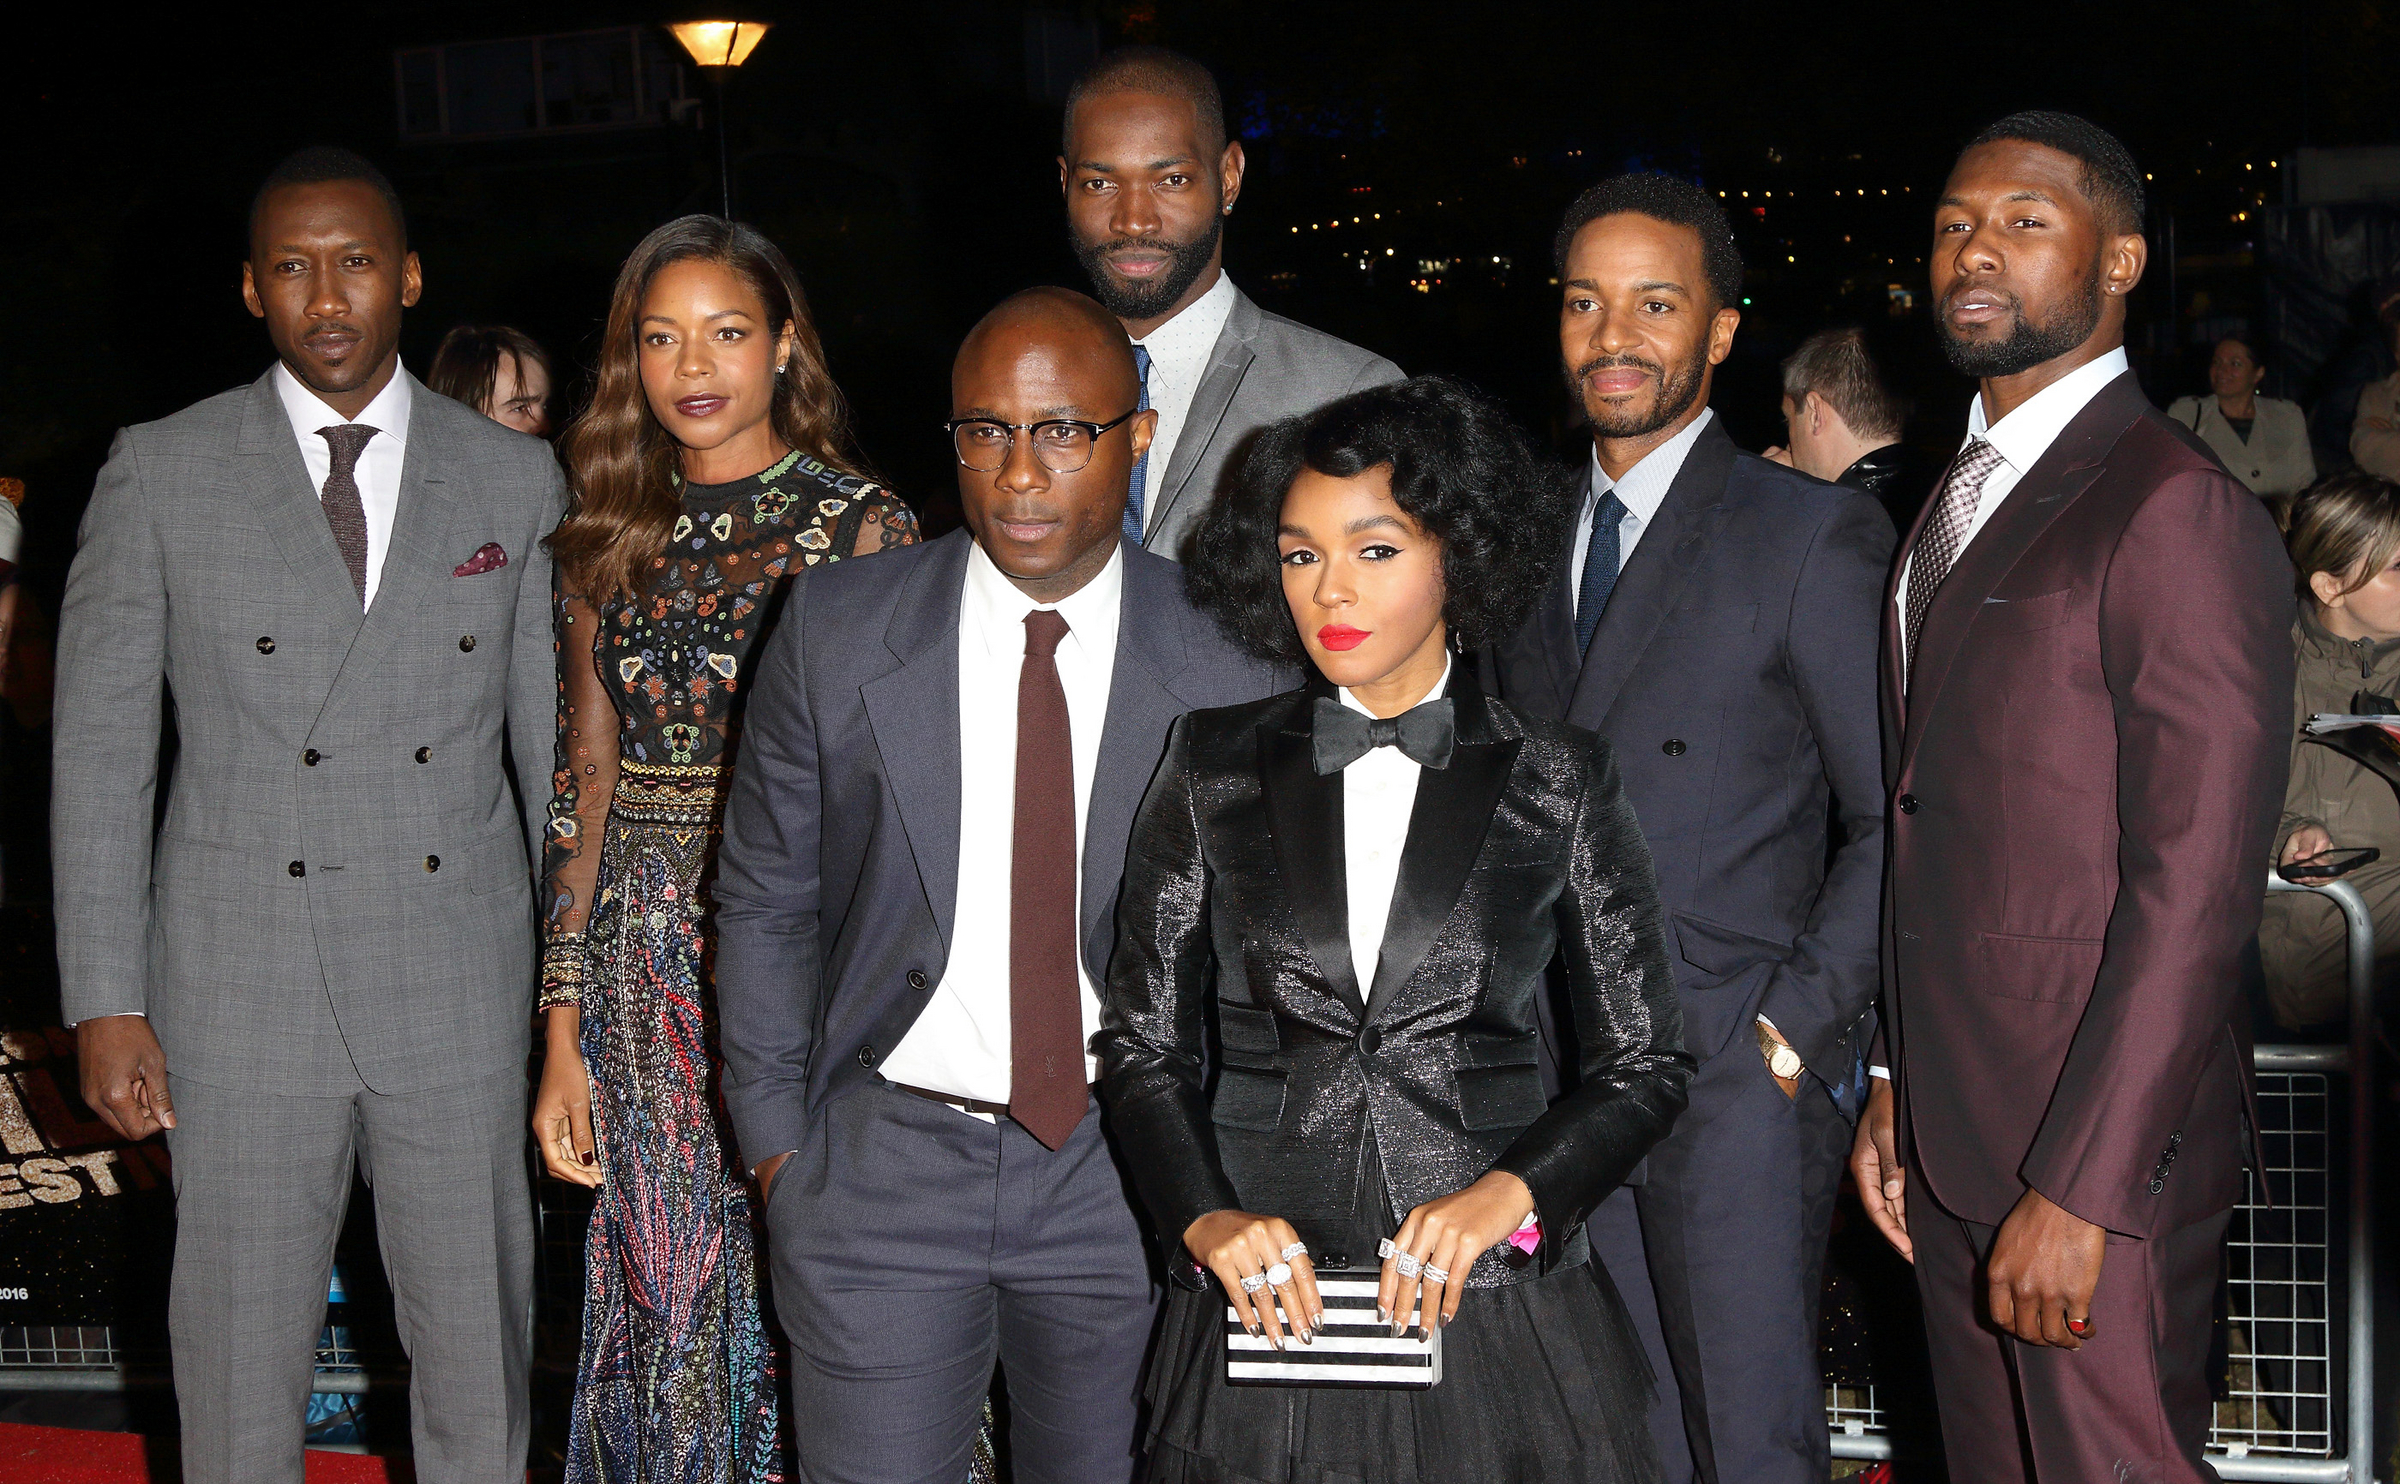 "10/06/2016 - Mahershala Ali, Naomie Harris, Tarell Alvin McCraney, Barry Jenkins, Janelle Monae, Andre Holland, Trevante Rhodes - 60th Annual BFI London Film Festival - ""Moonlight "" Competition Screening - Arrivals - Embankment Garden Cinema, Villiers Street - London, UK - Keywords: Horizontal, LFF, London Film Festival, People, Person, Film Industry, Red Carpet Event, Arts Culture and Entertainment, Attending, Celebrity, Celebrities, Annual Event, United Kingdom, Britain, England, Ref: LMK73-61096-071016 Orientation: Portrait Face Count: 1 - False - Photo Credit: Landmark / PR Photos - Contact (1-866-551-7827) - Portrait Face Count: 1"